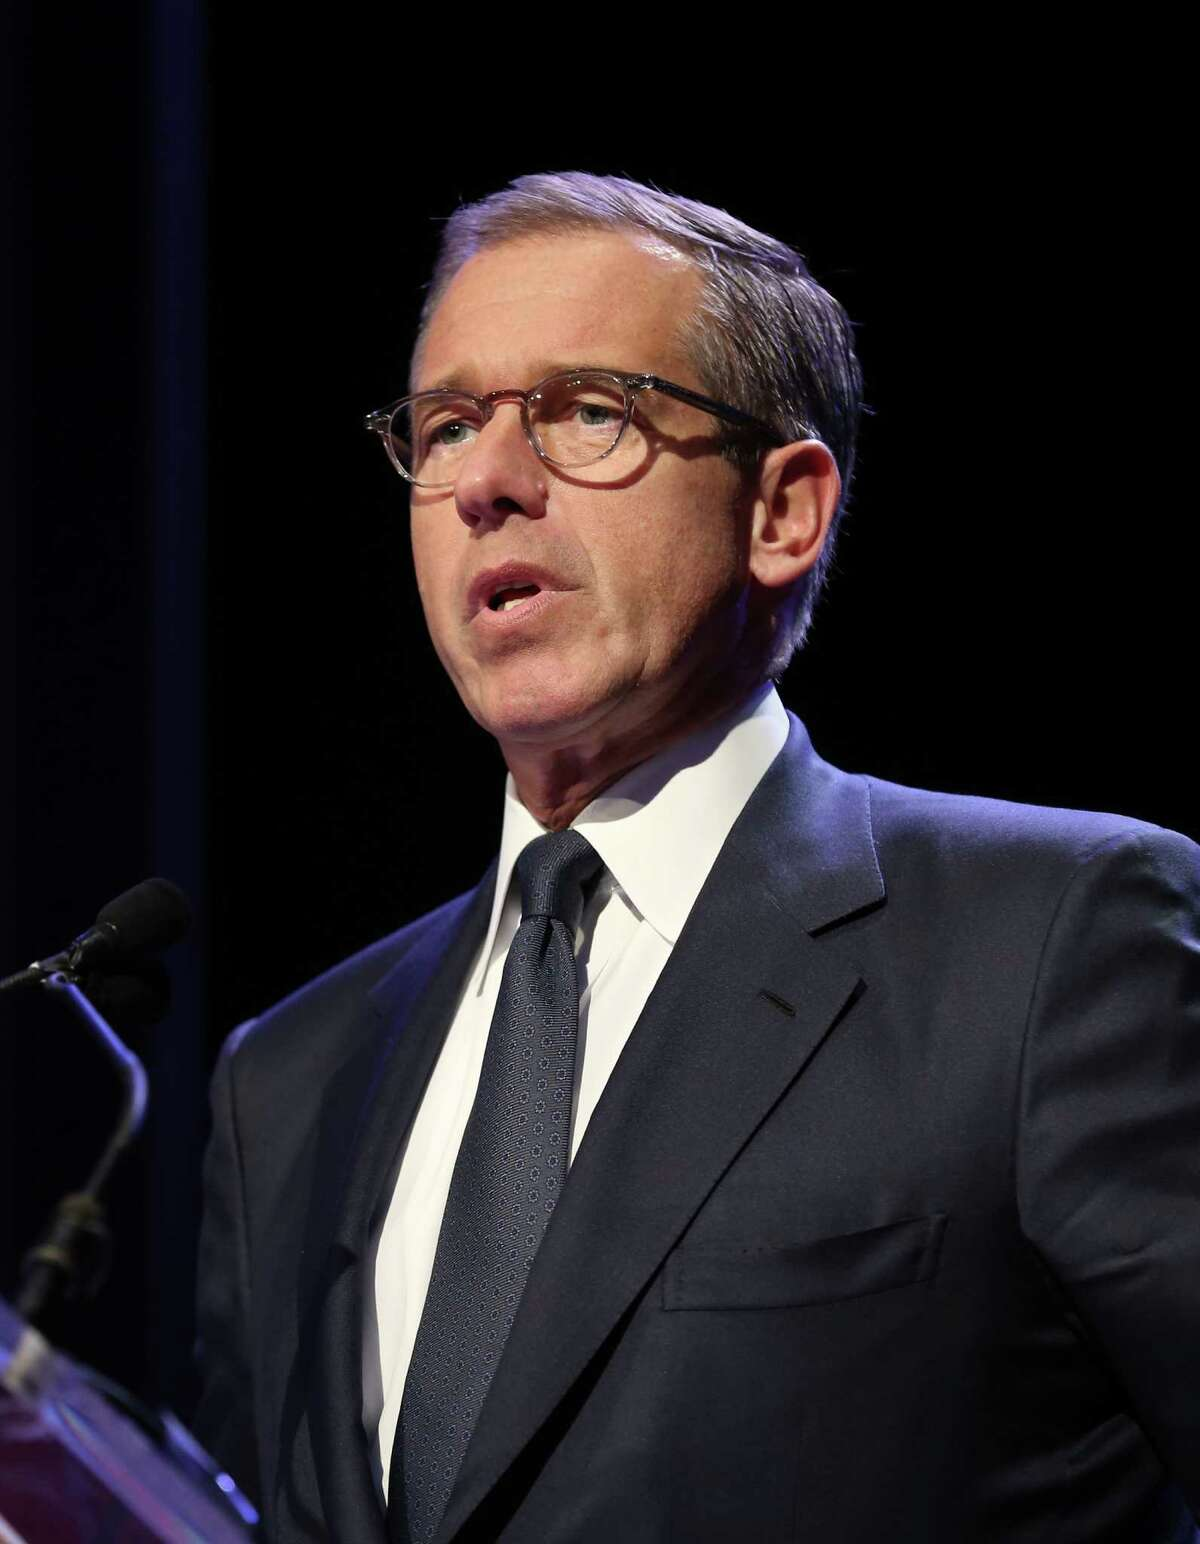 It was reported that NBC news anchorman Brian Williams is taking himself off the evening newscast temporarily as he is investigated over comments he made that misled the public February 7, 2015.